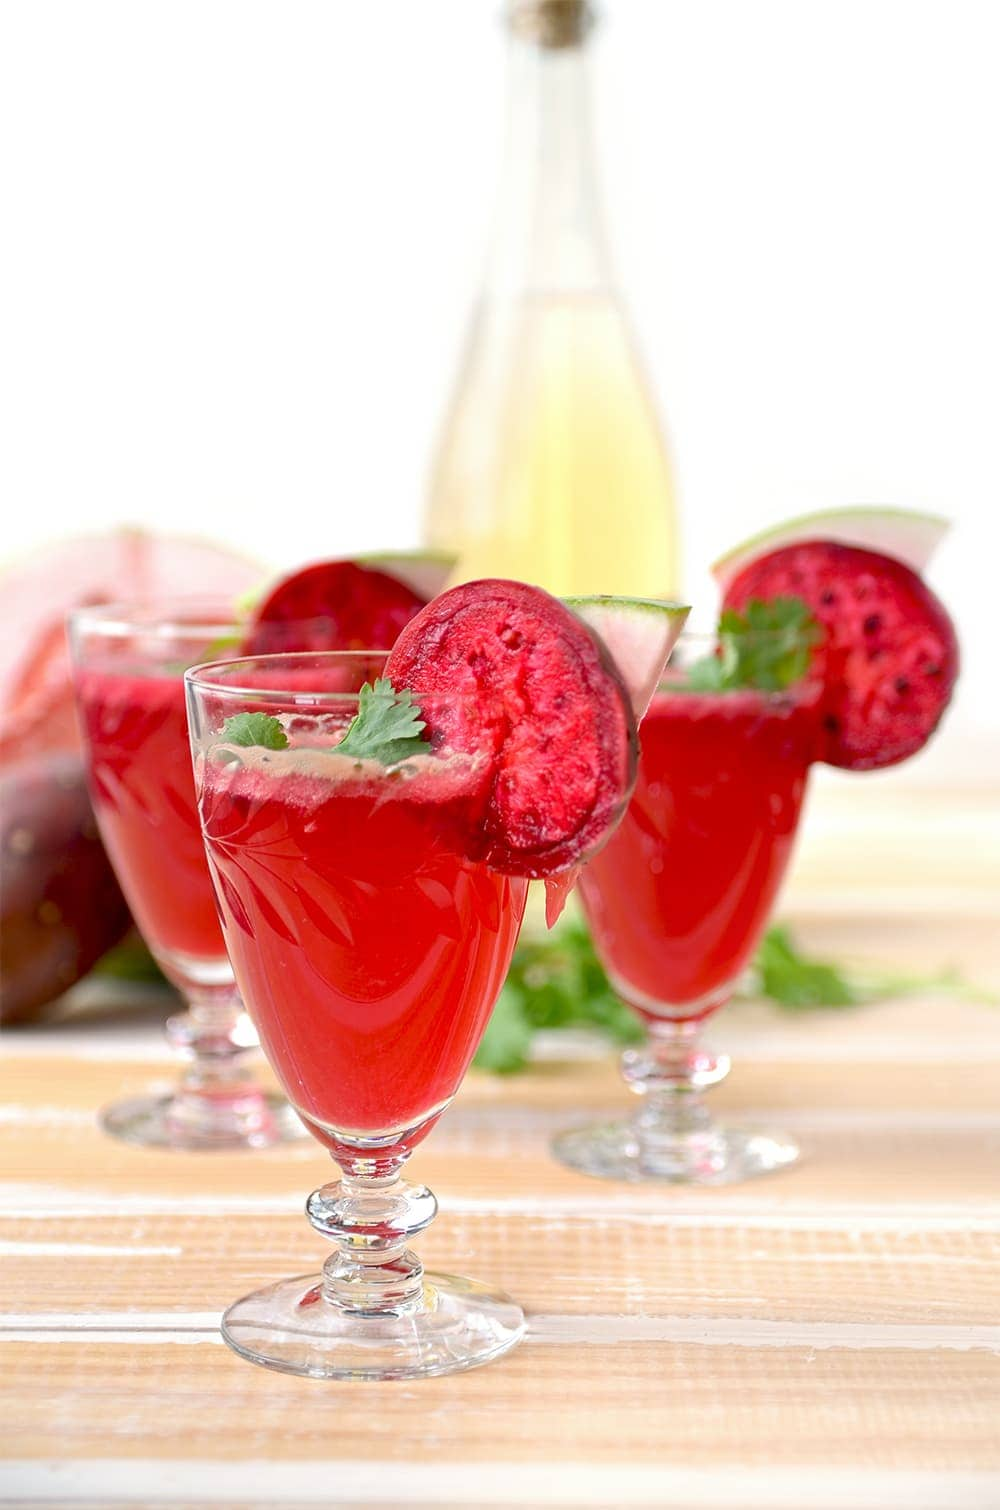 Refreshing, fruity and unique, this Prickly Pear Hard Cider Cocktail with Cilantro and Pomelo tastes as yummy and bright as it looks. | vintagekitty.com